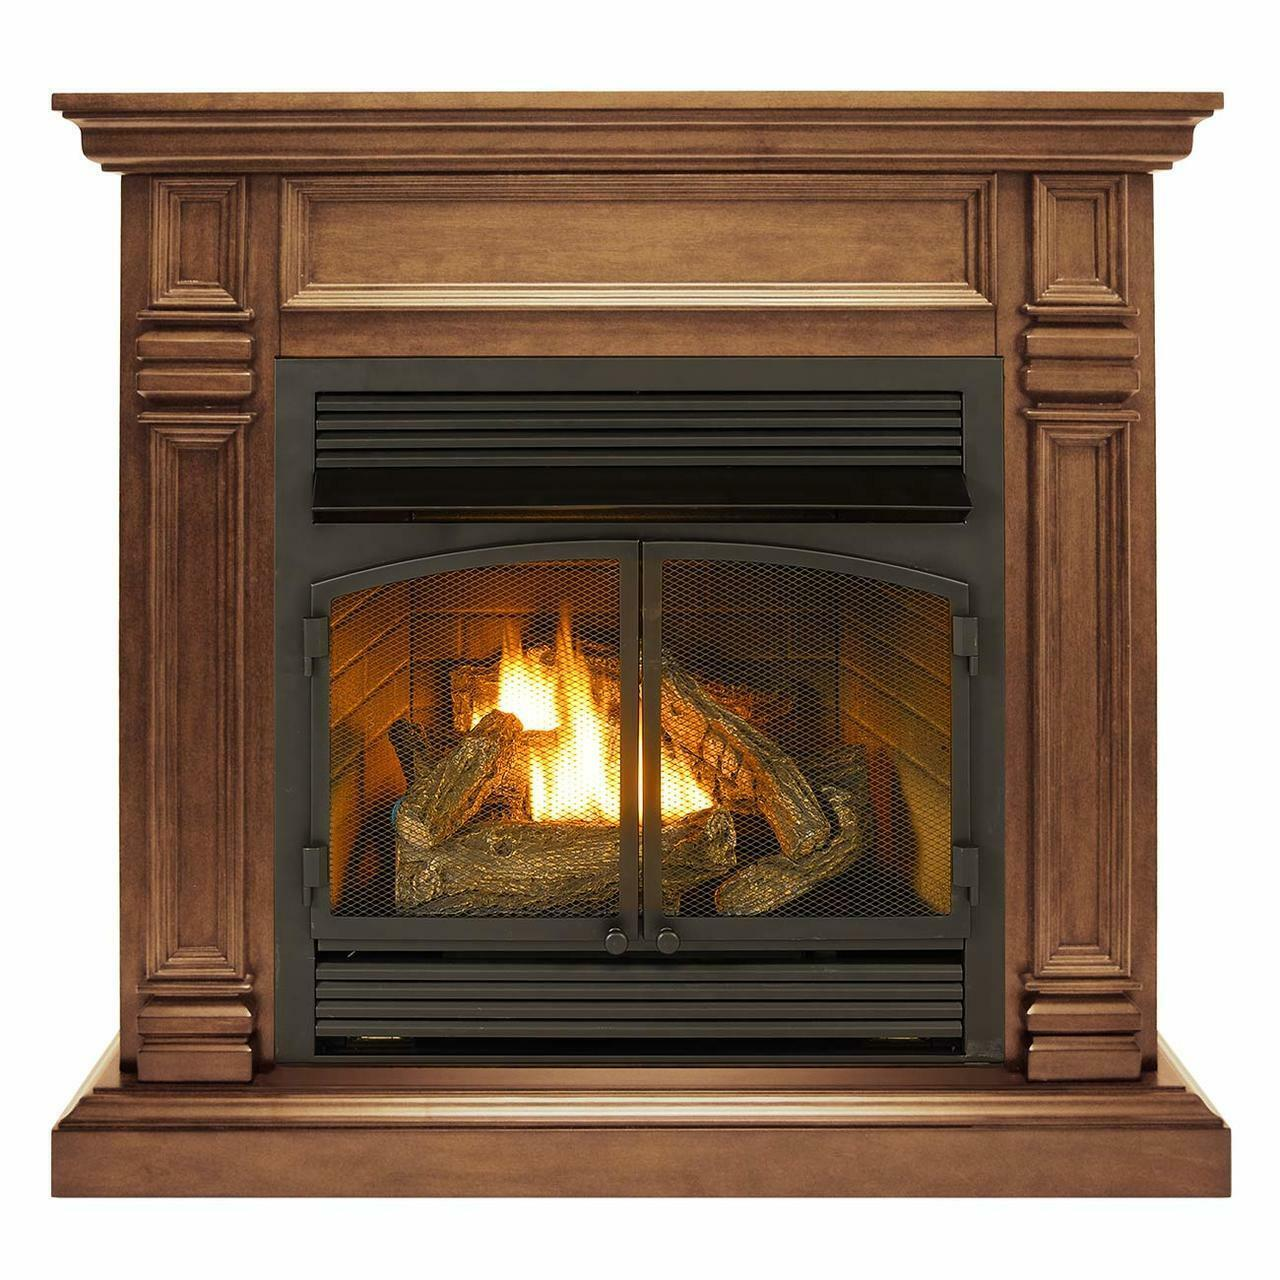 Duluth Forge Dual Fuel Ventless Gas Fireplace With Mantel 32